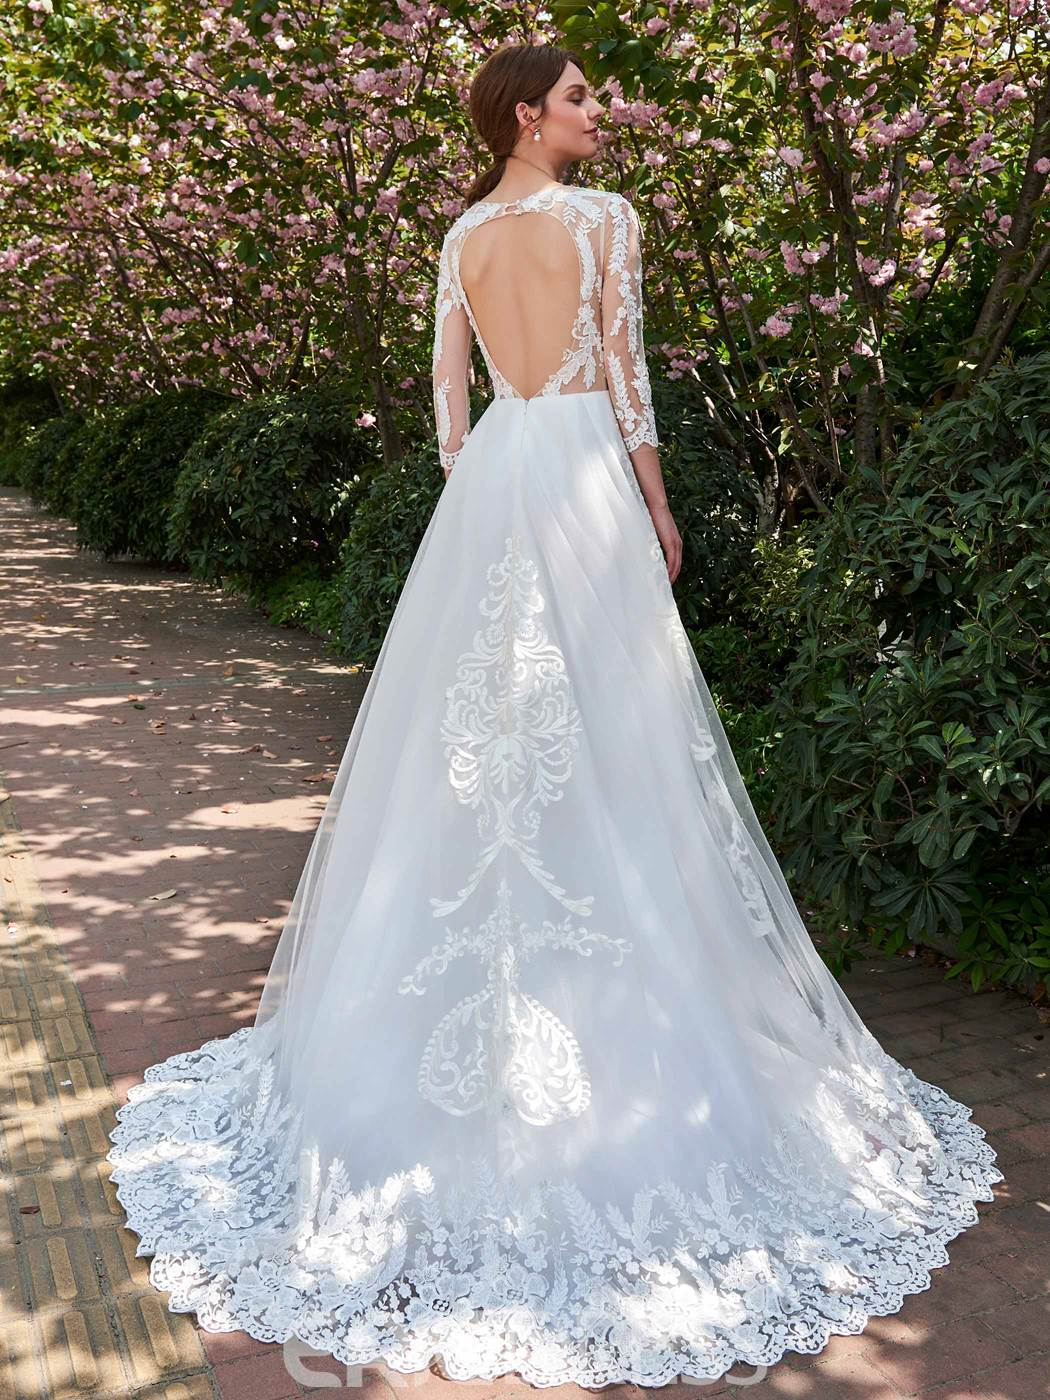 Ericdress Illusion Neckline Backless A Line 3/4 Length Sleeves Appliques Wedding Dress